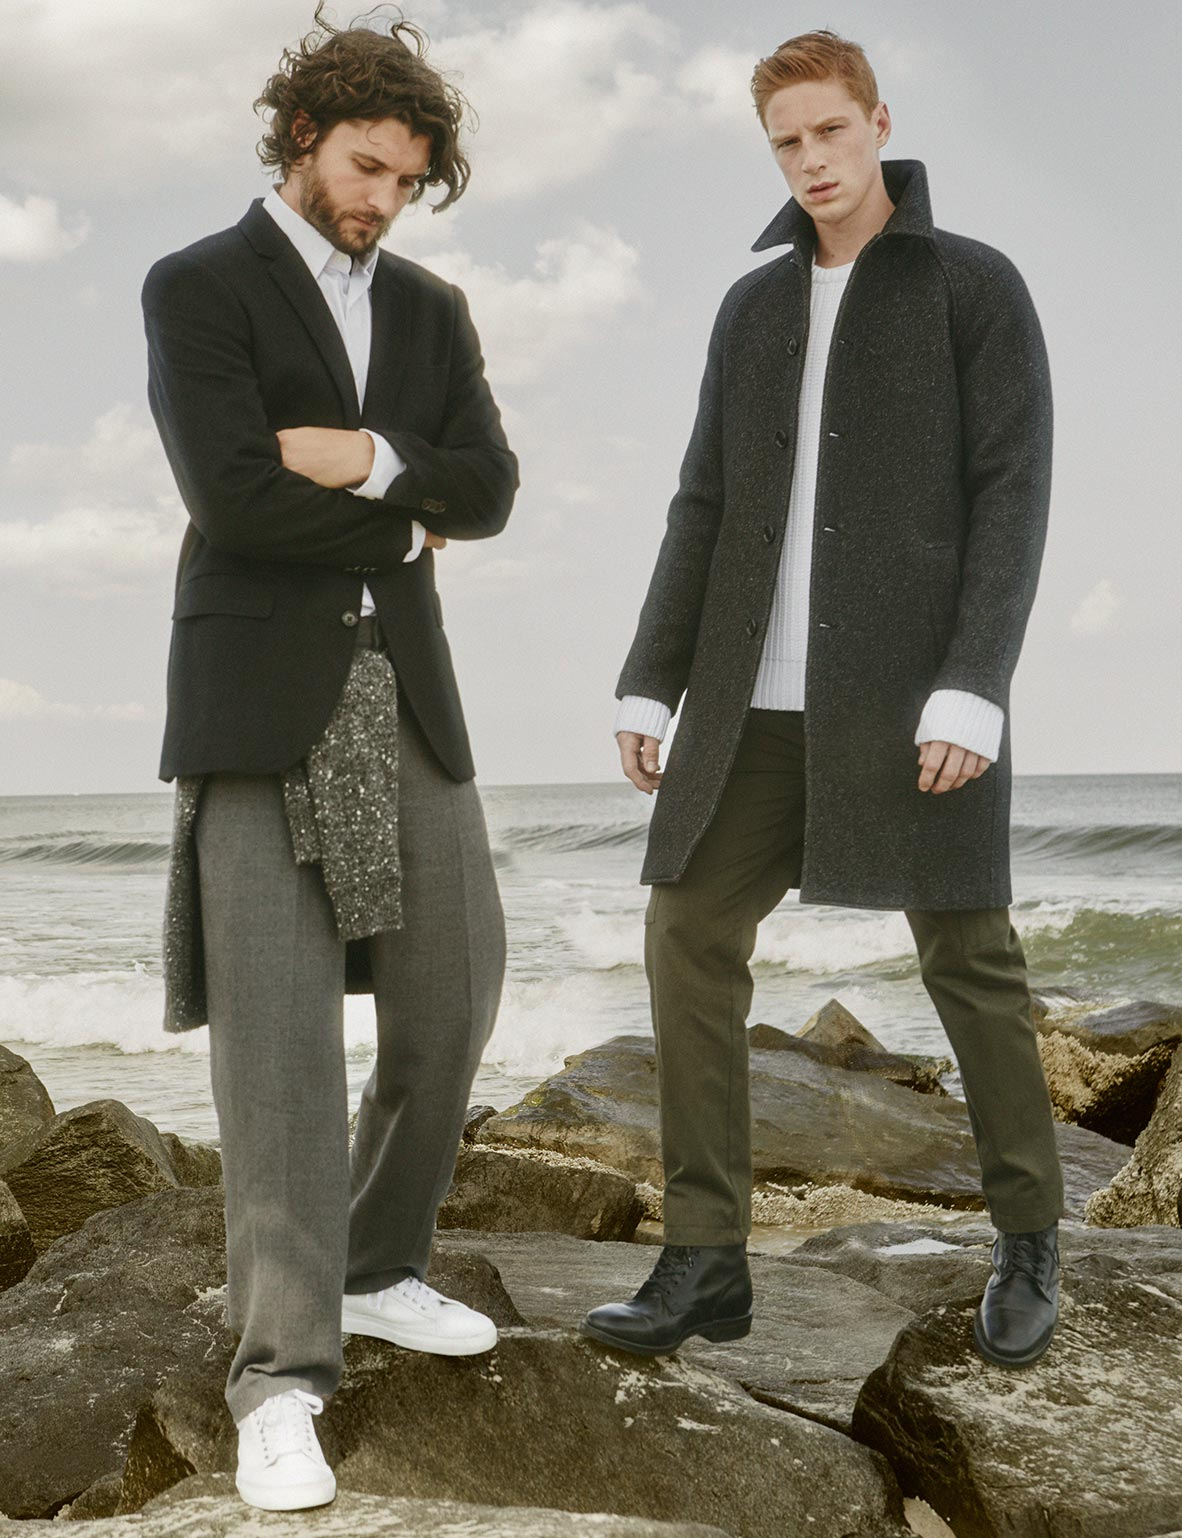 Club Monaco Heads to the Shore with Chic Fall Fashions